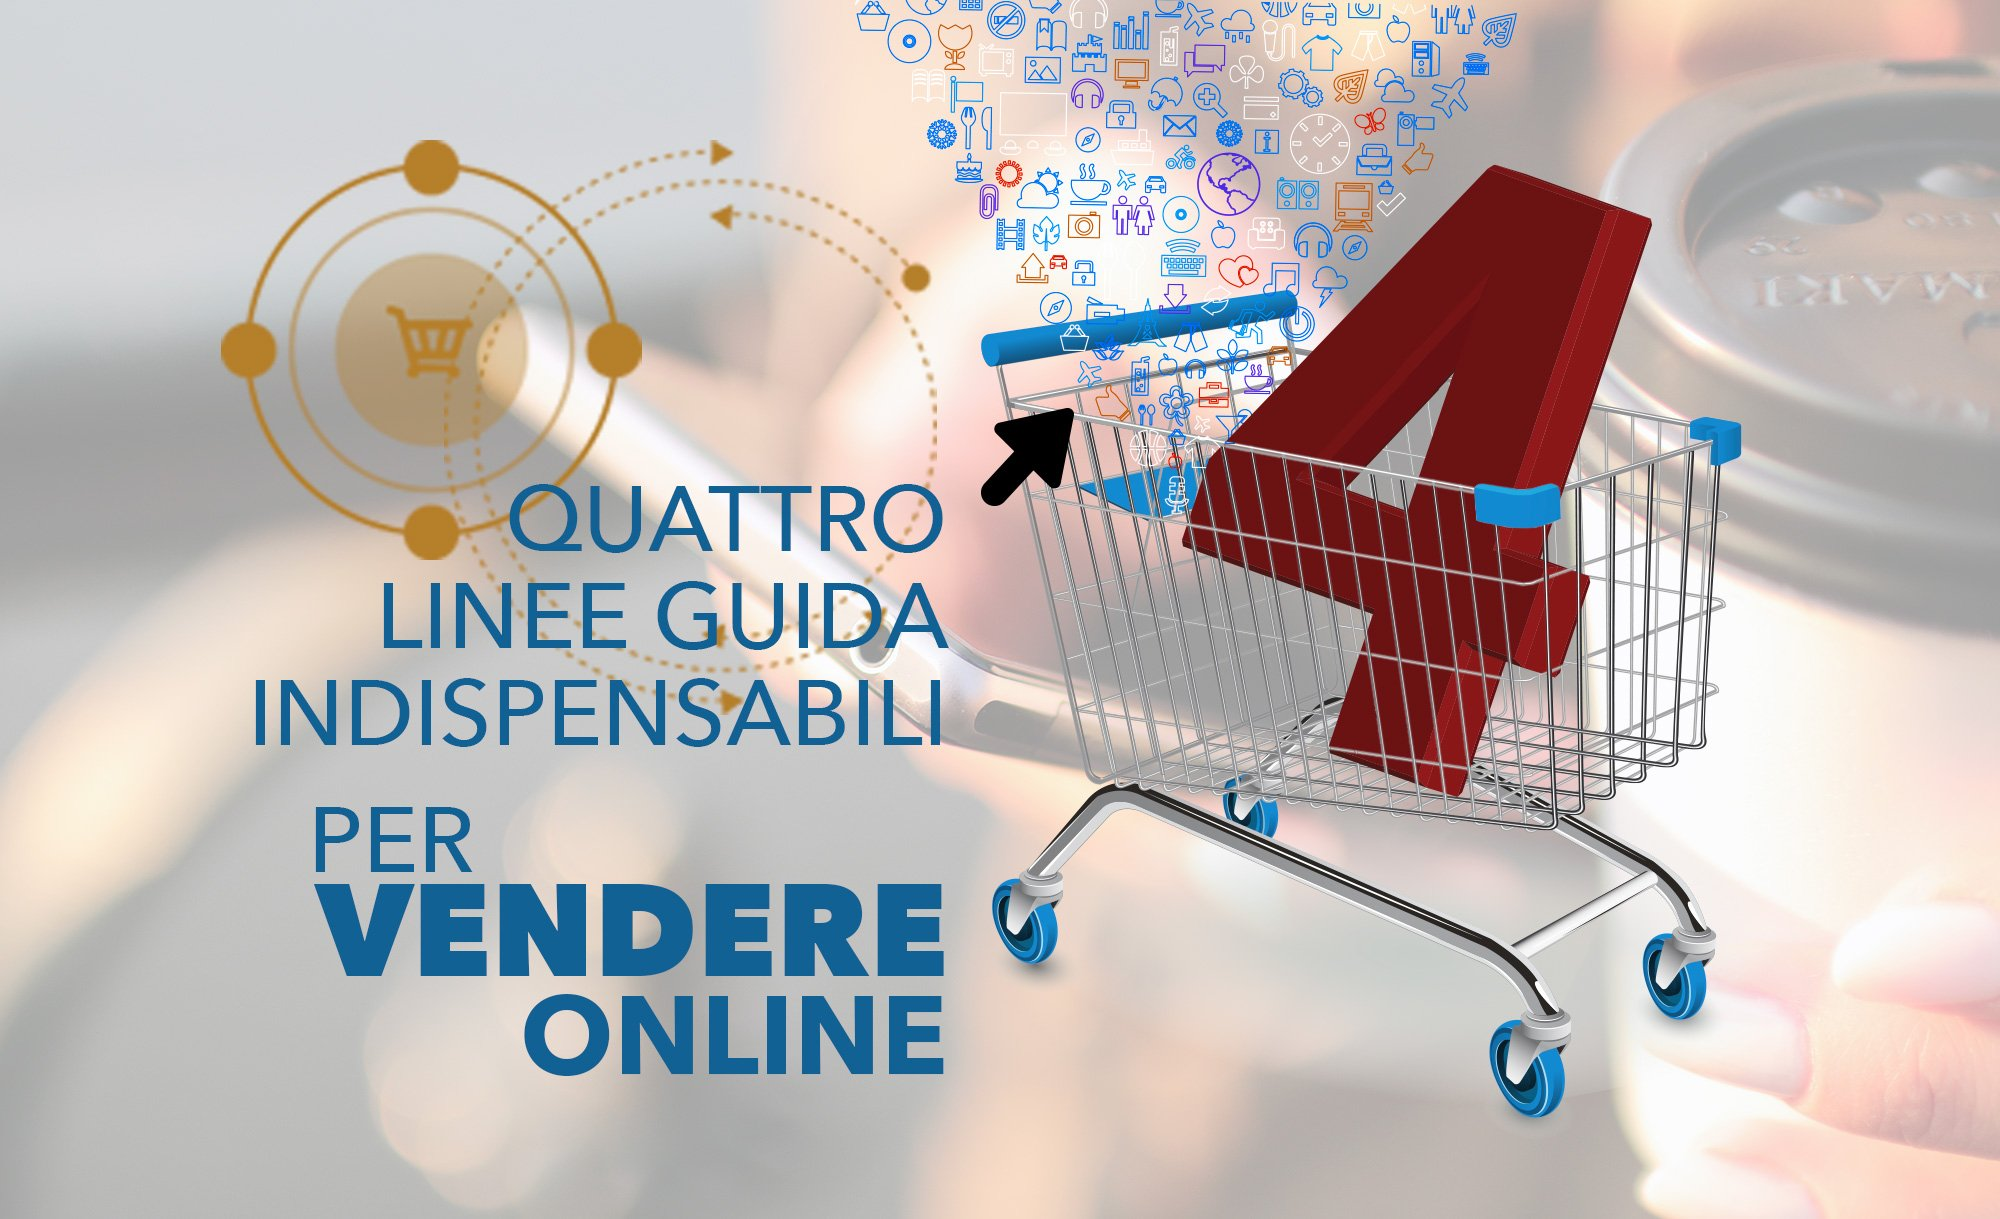 ecommerce guro 4 linee guida x vendere online-620x378 4